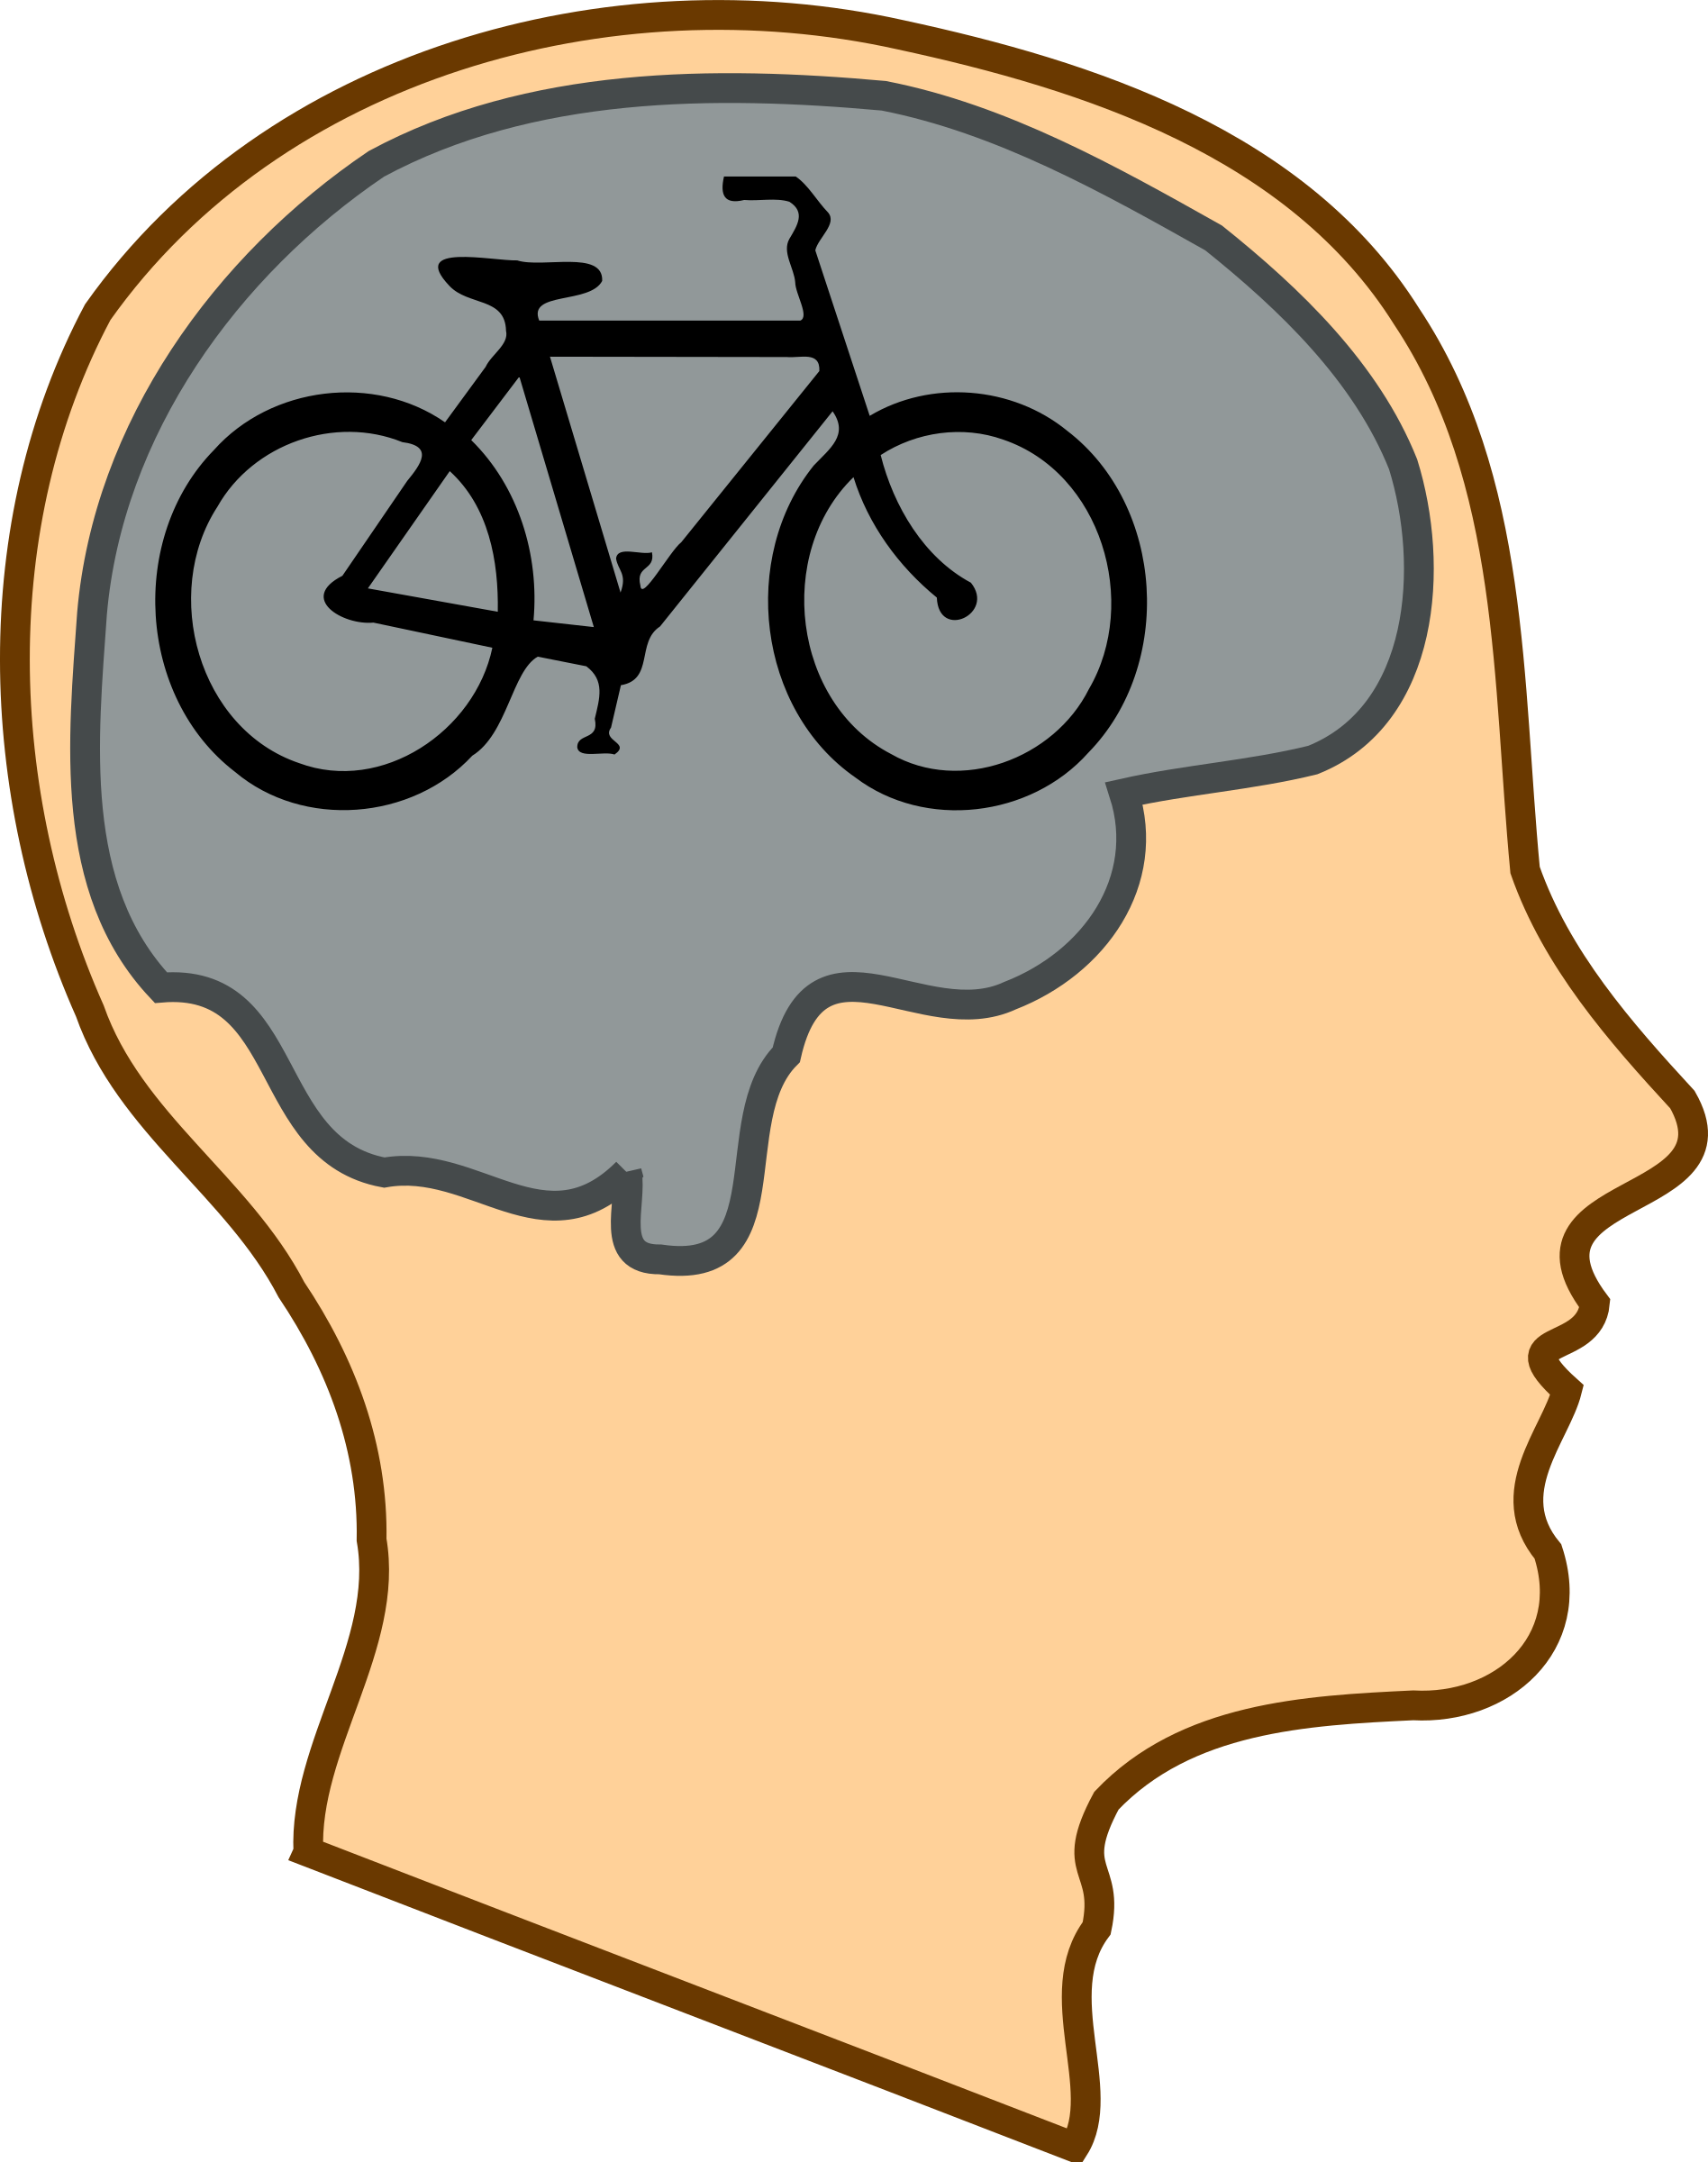 Bicycle For Our Minds by GR8DAN